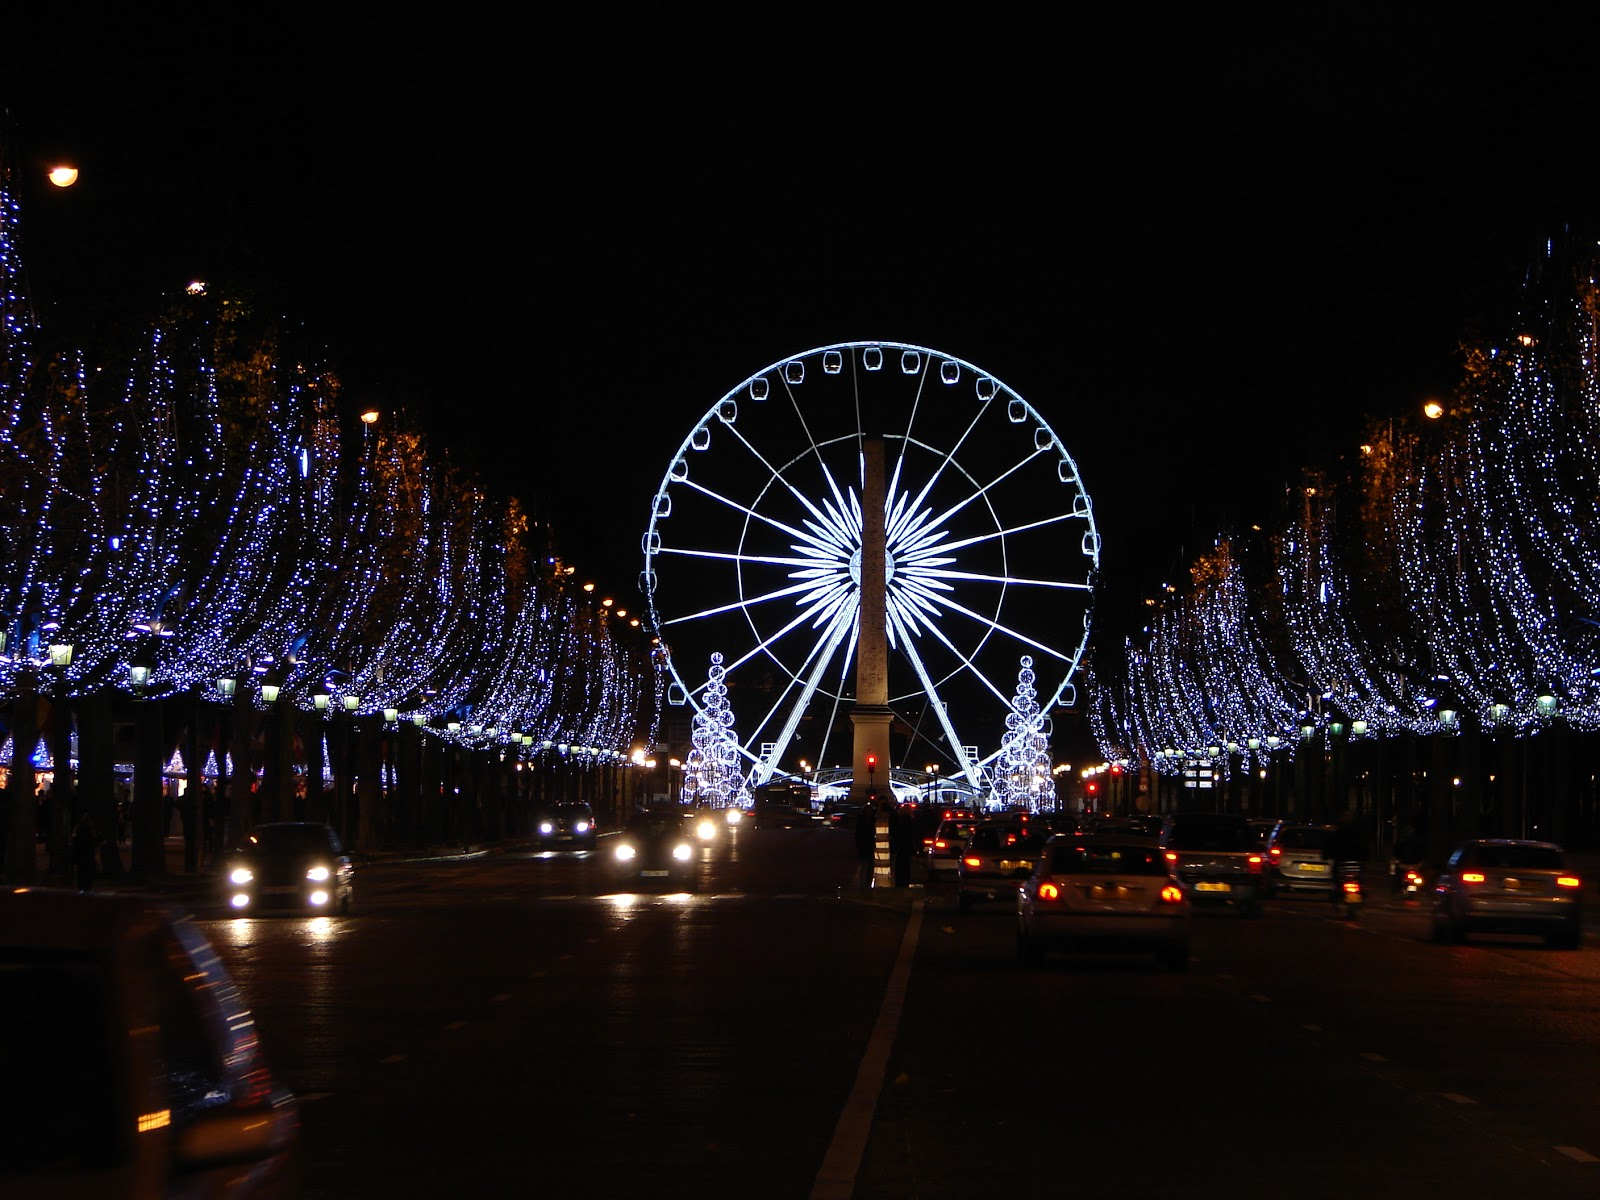 10 - Illumination de paris ...